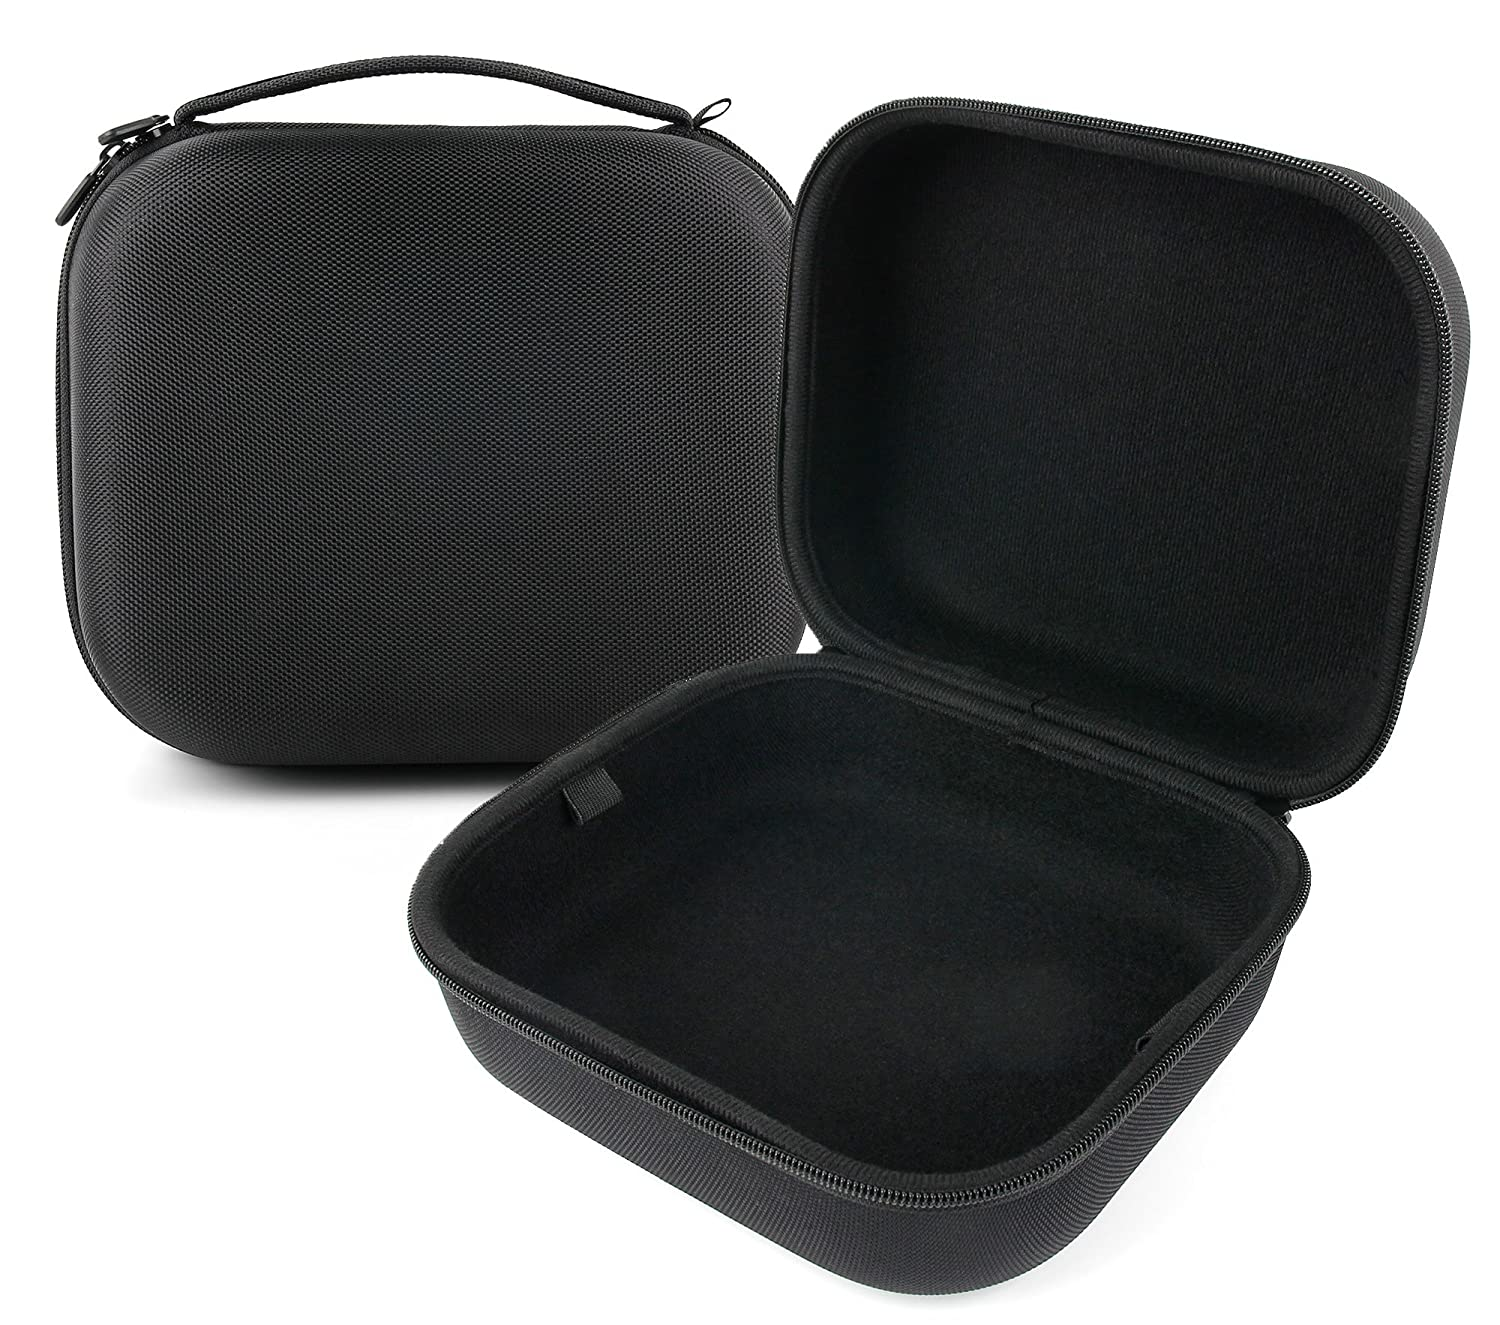 大きなマットブラックTough EVAストレージCarry Case for the Howard Leight Hearing Protectionヘッドセット1030110 – by DURAGADGET   B01LXO278G